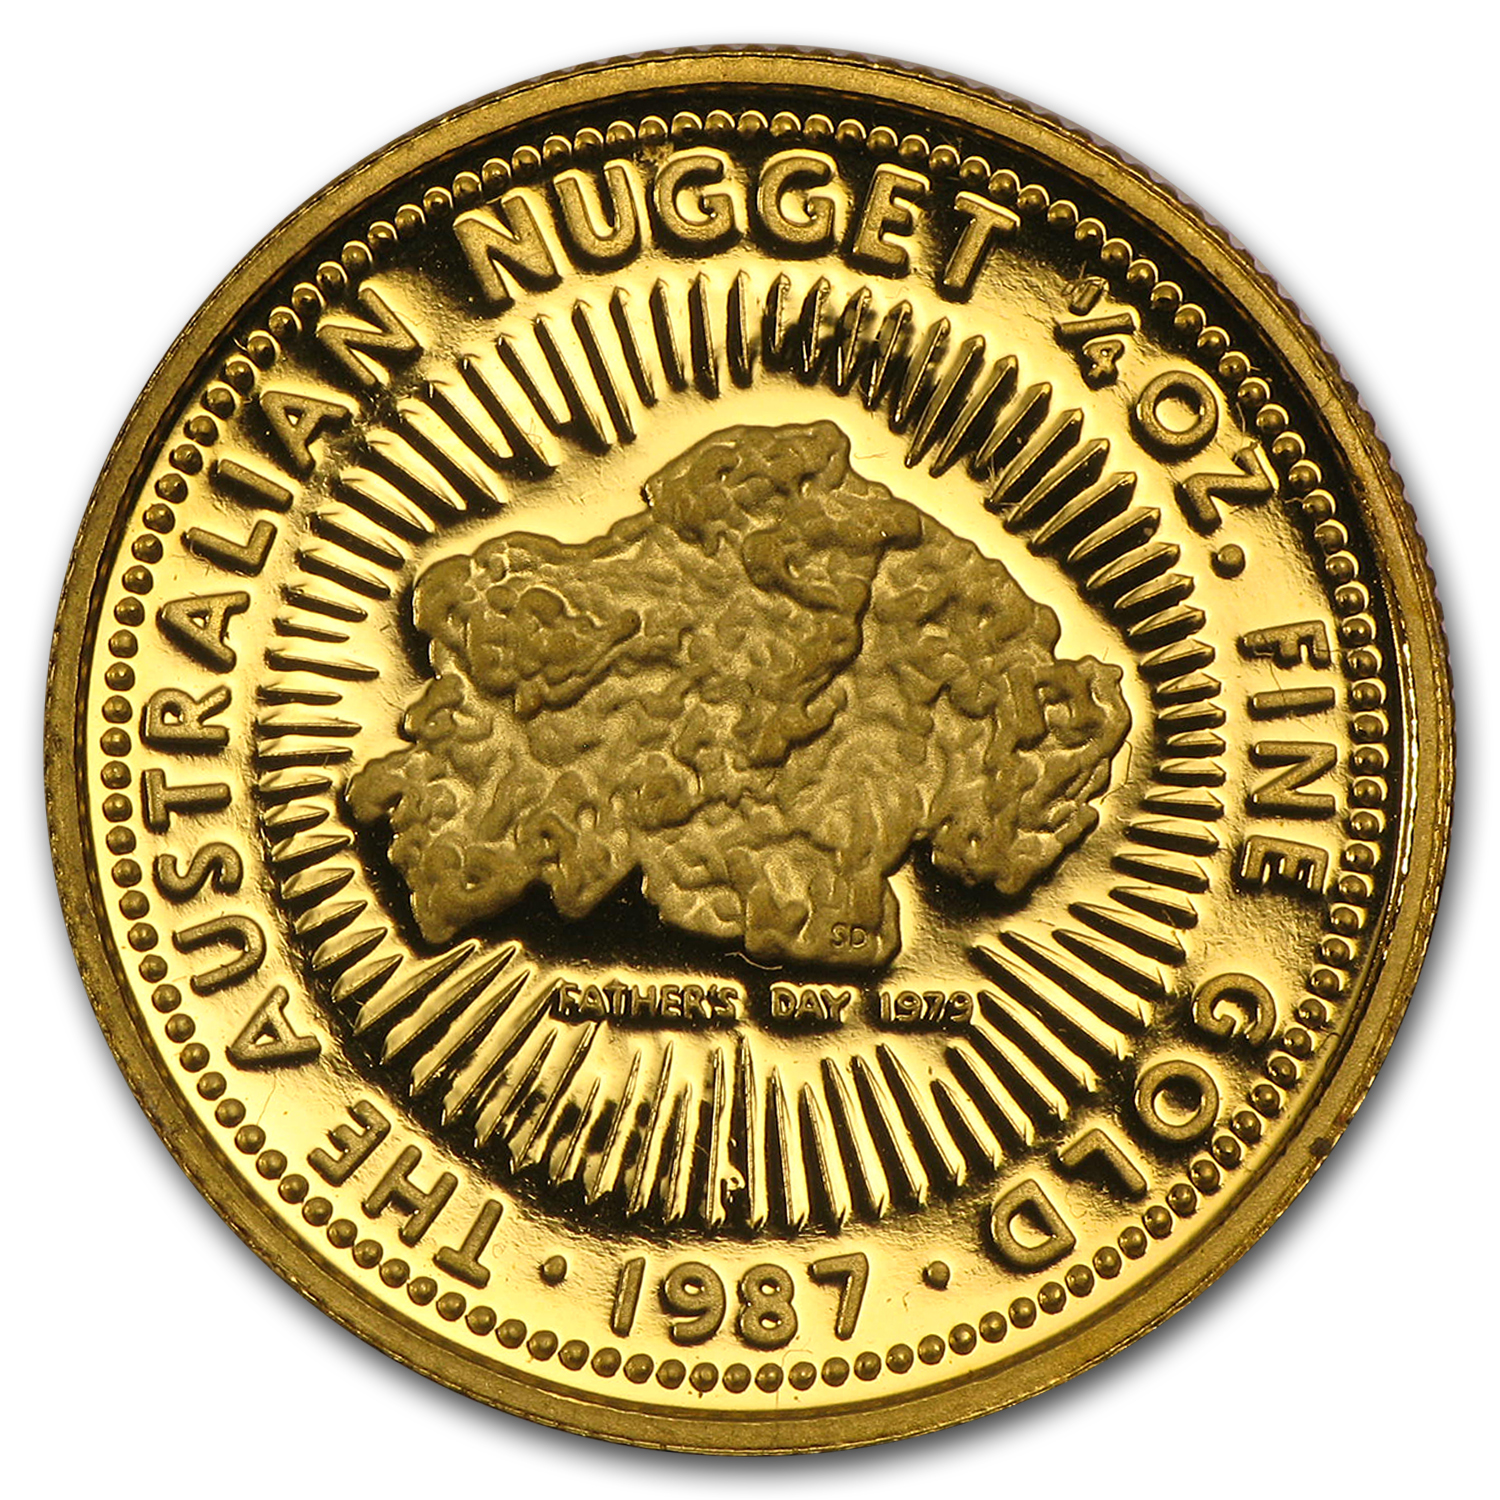 1987 1/4 oz Australian Proof Gold Nugget